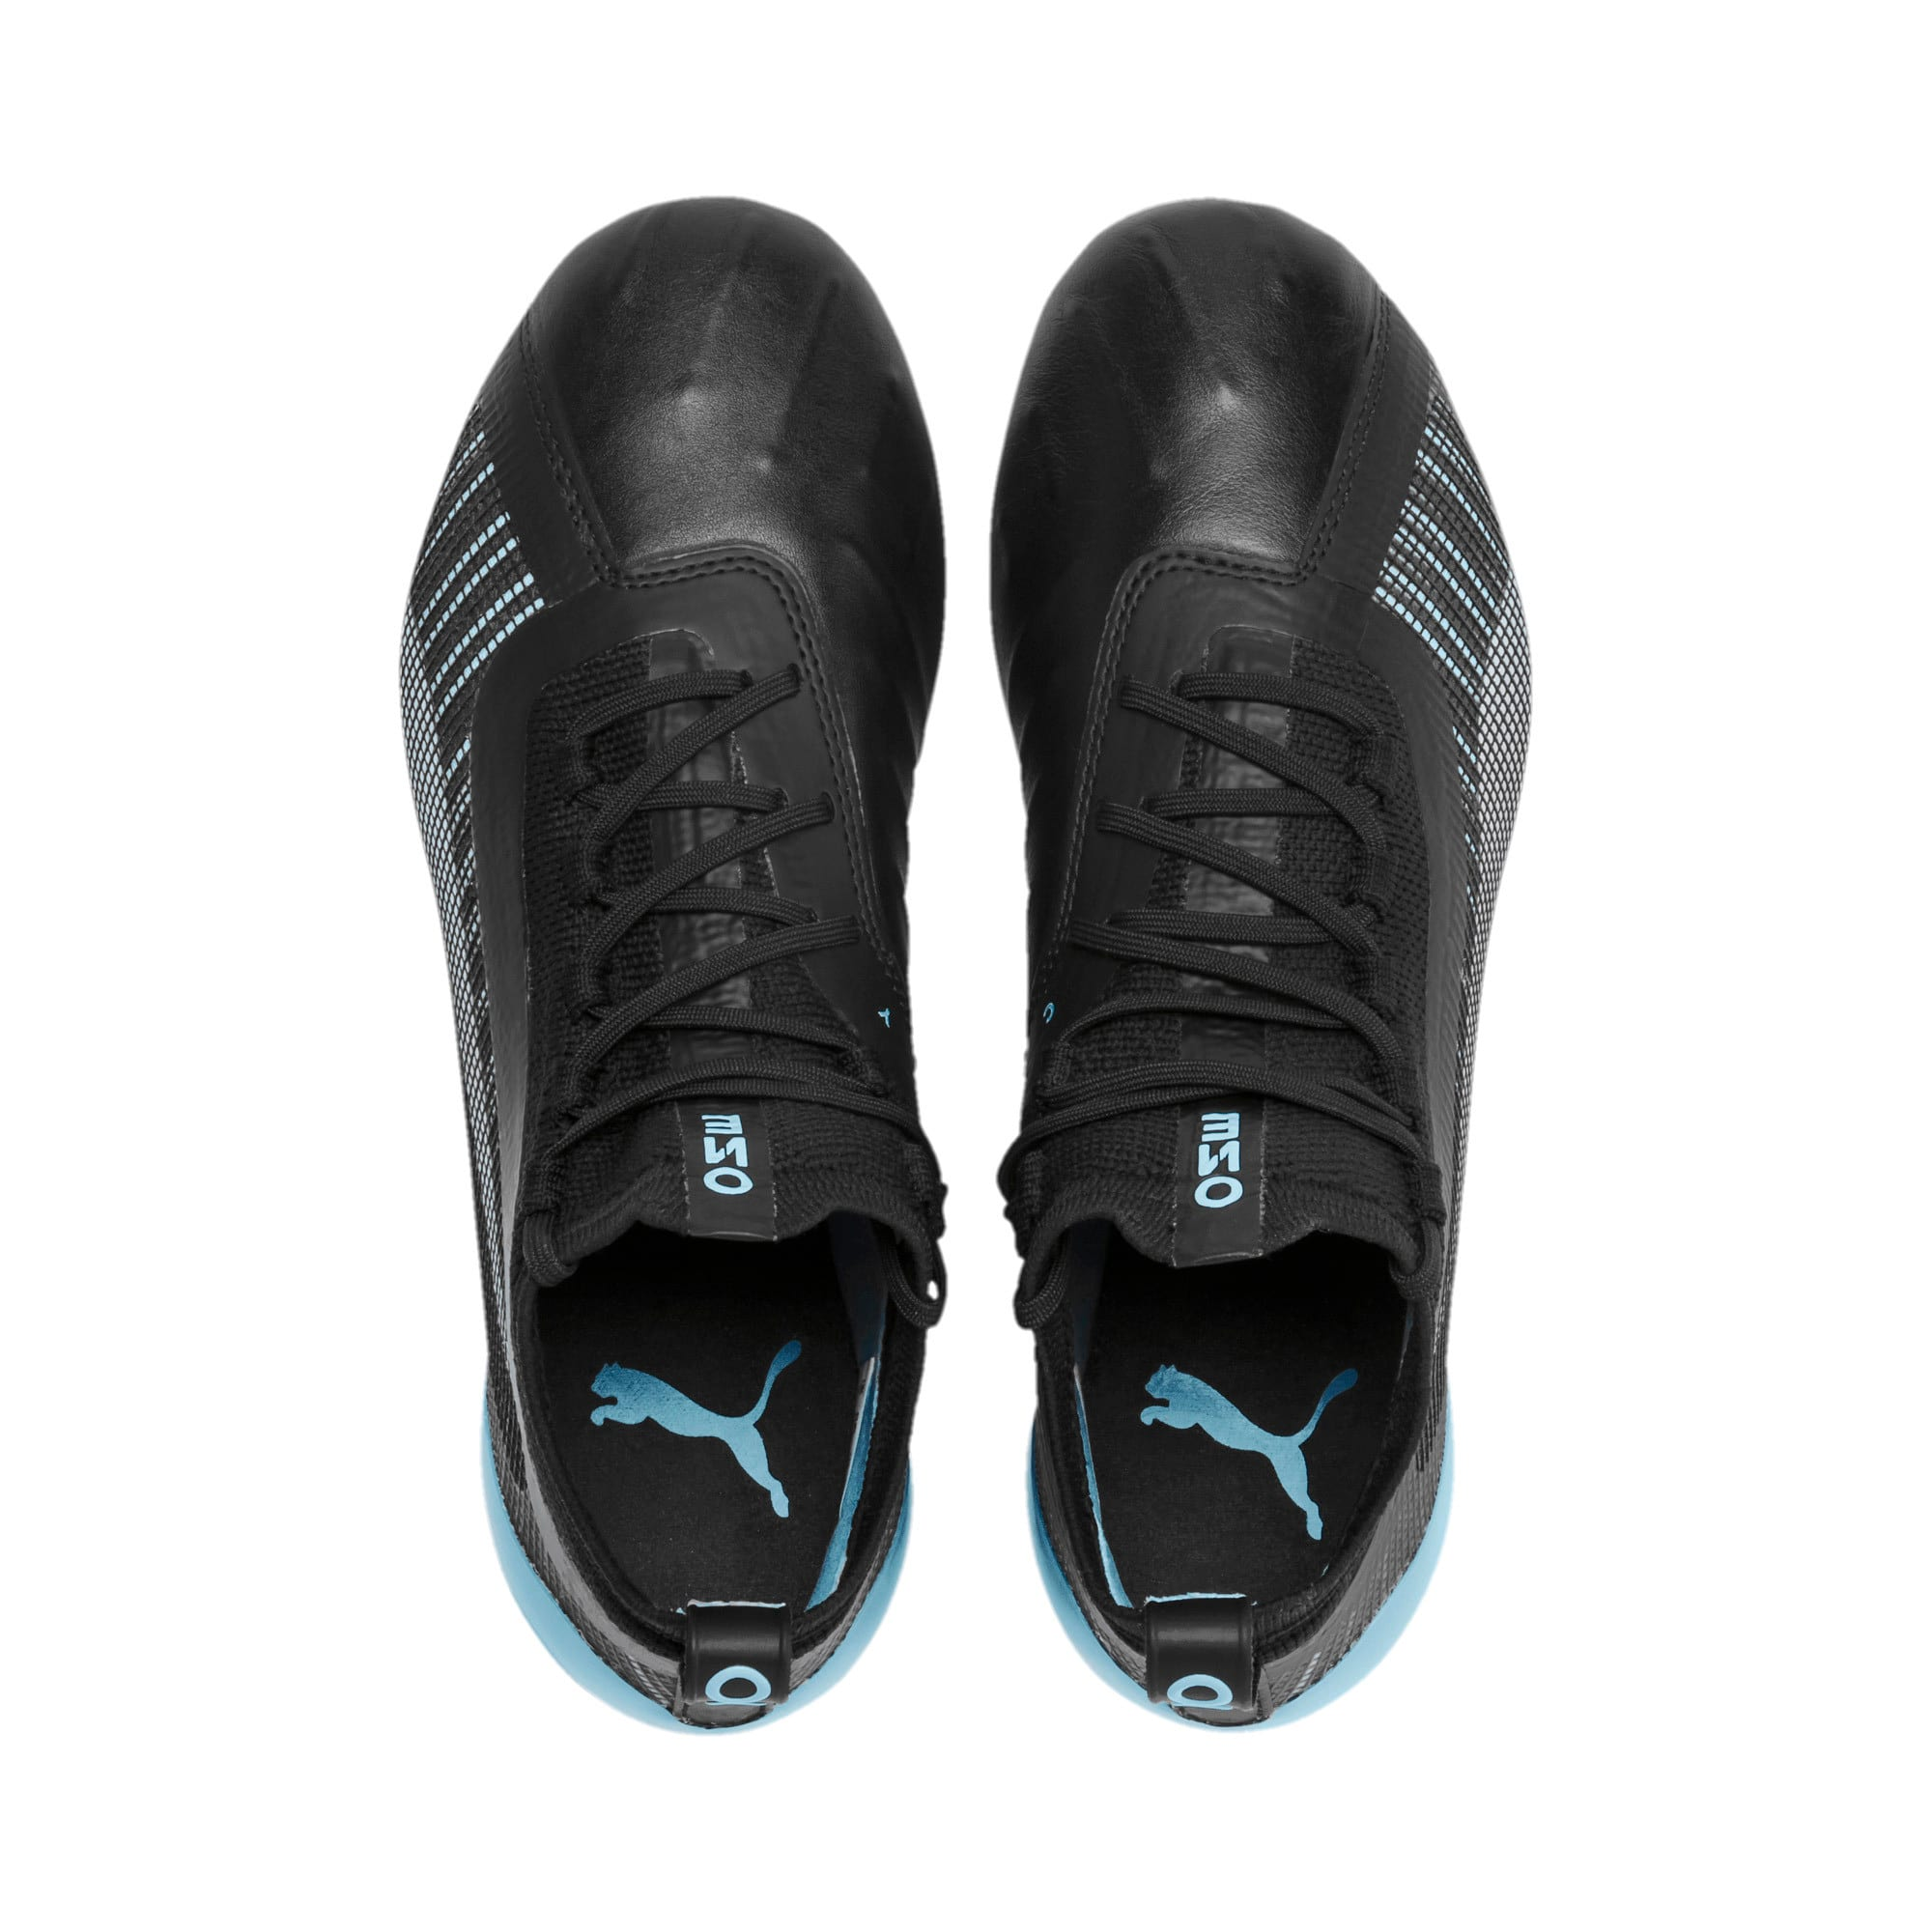 Imagen en miniatura 6 de Botas de fútbol PUMA ONE 5.1 City Youth, Black-Sky Blue-Puma White, mediana